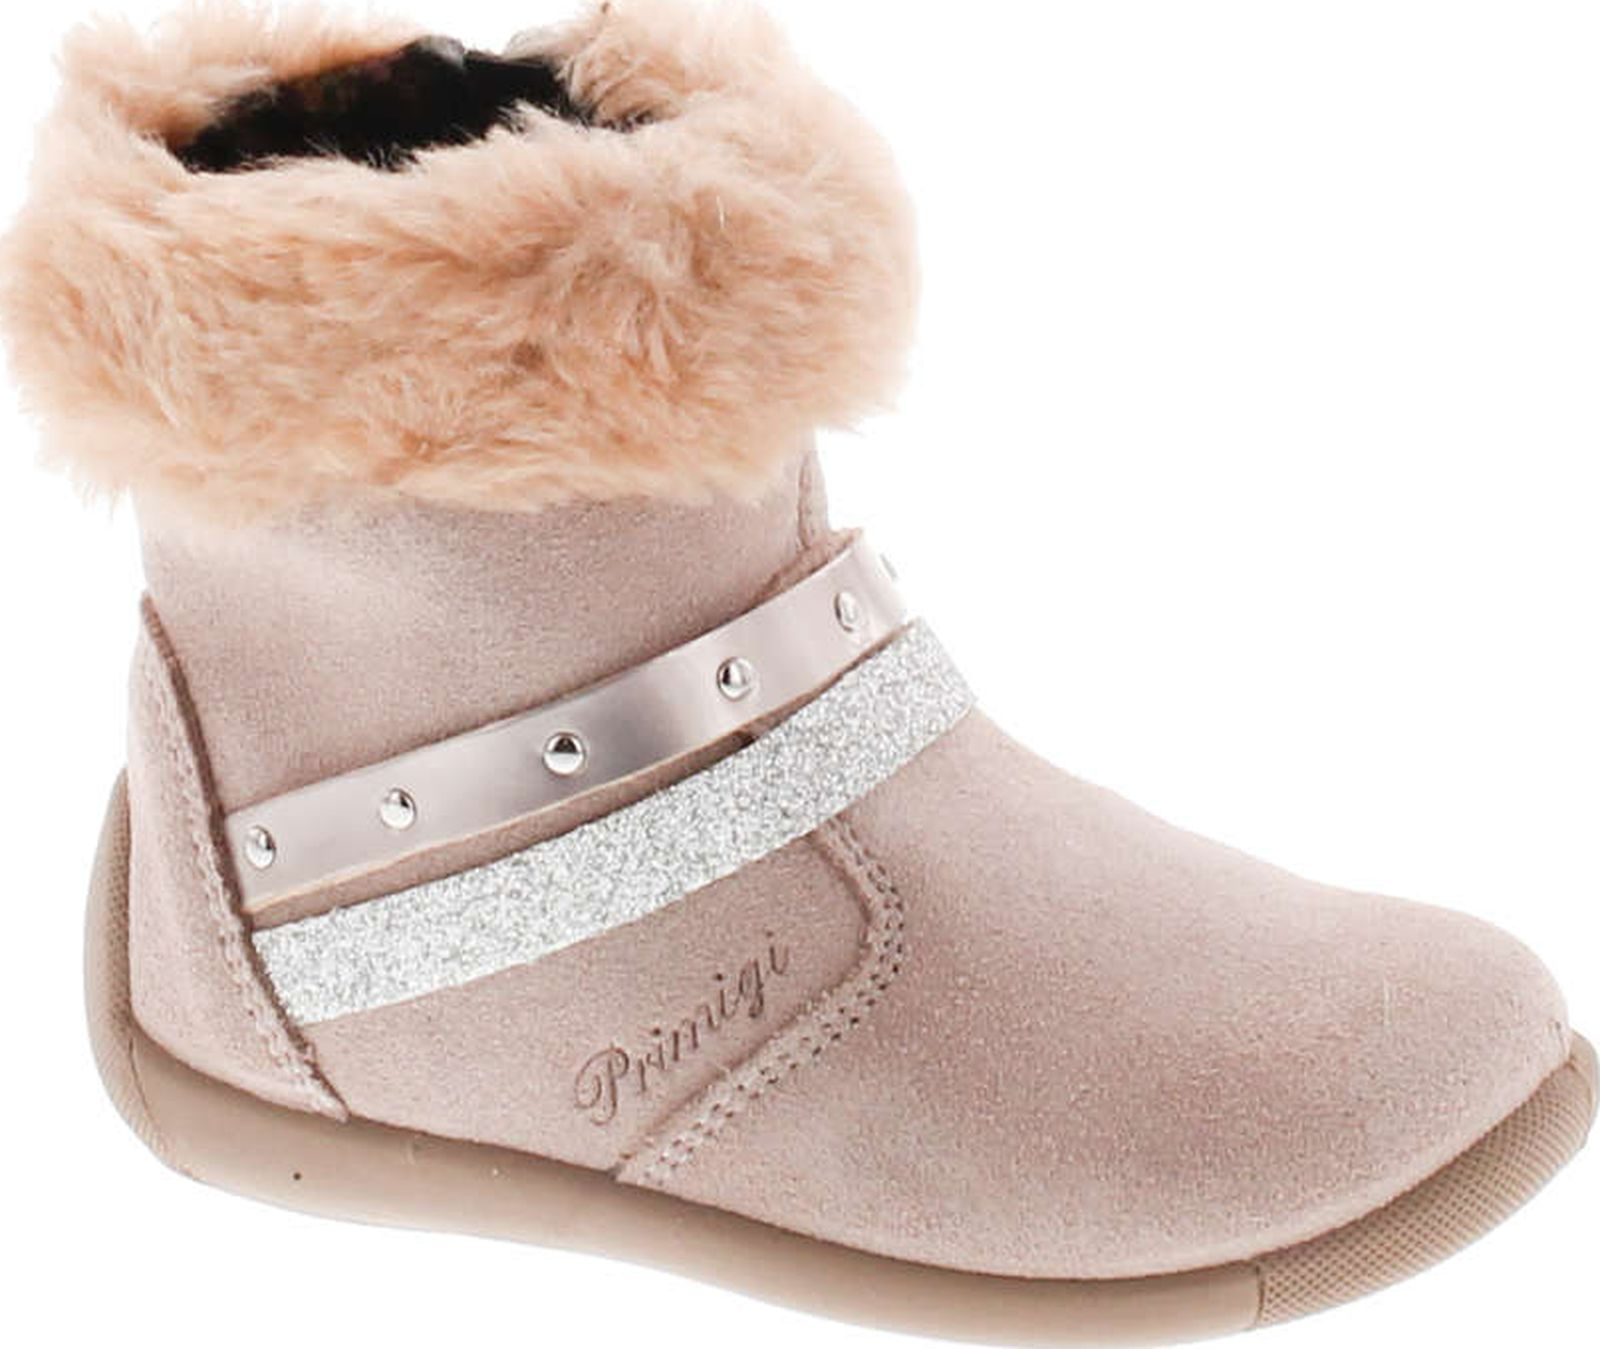 Primigi Girls Designer Fashion Fur Trimmed Booties by Primigi